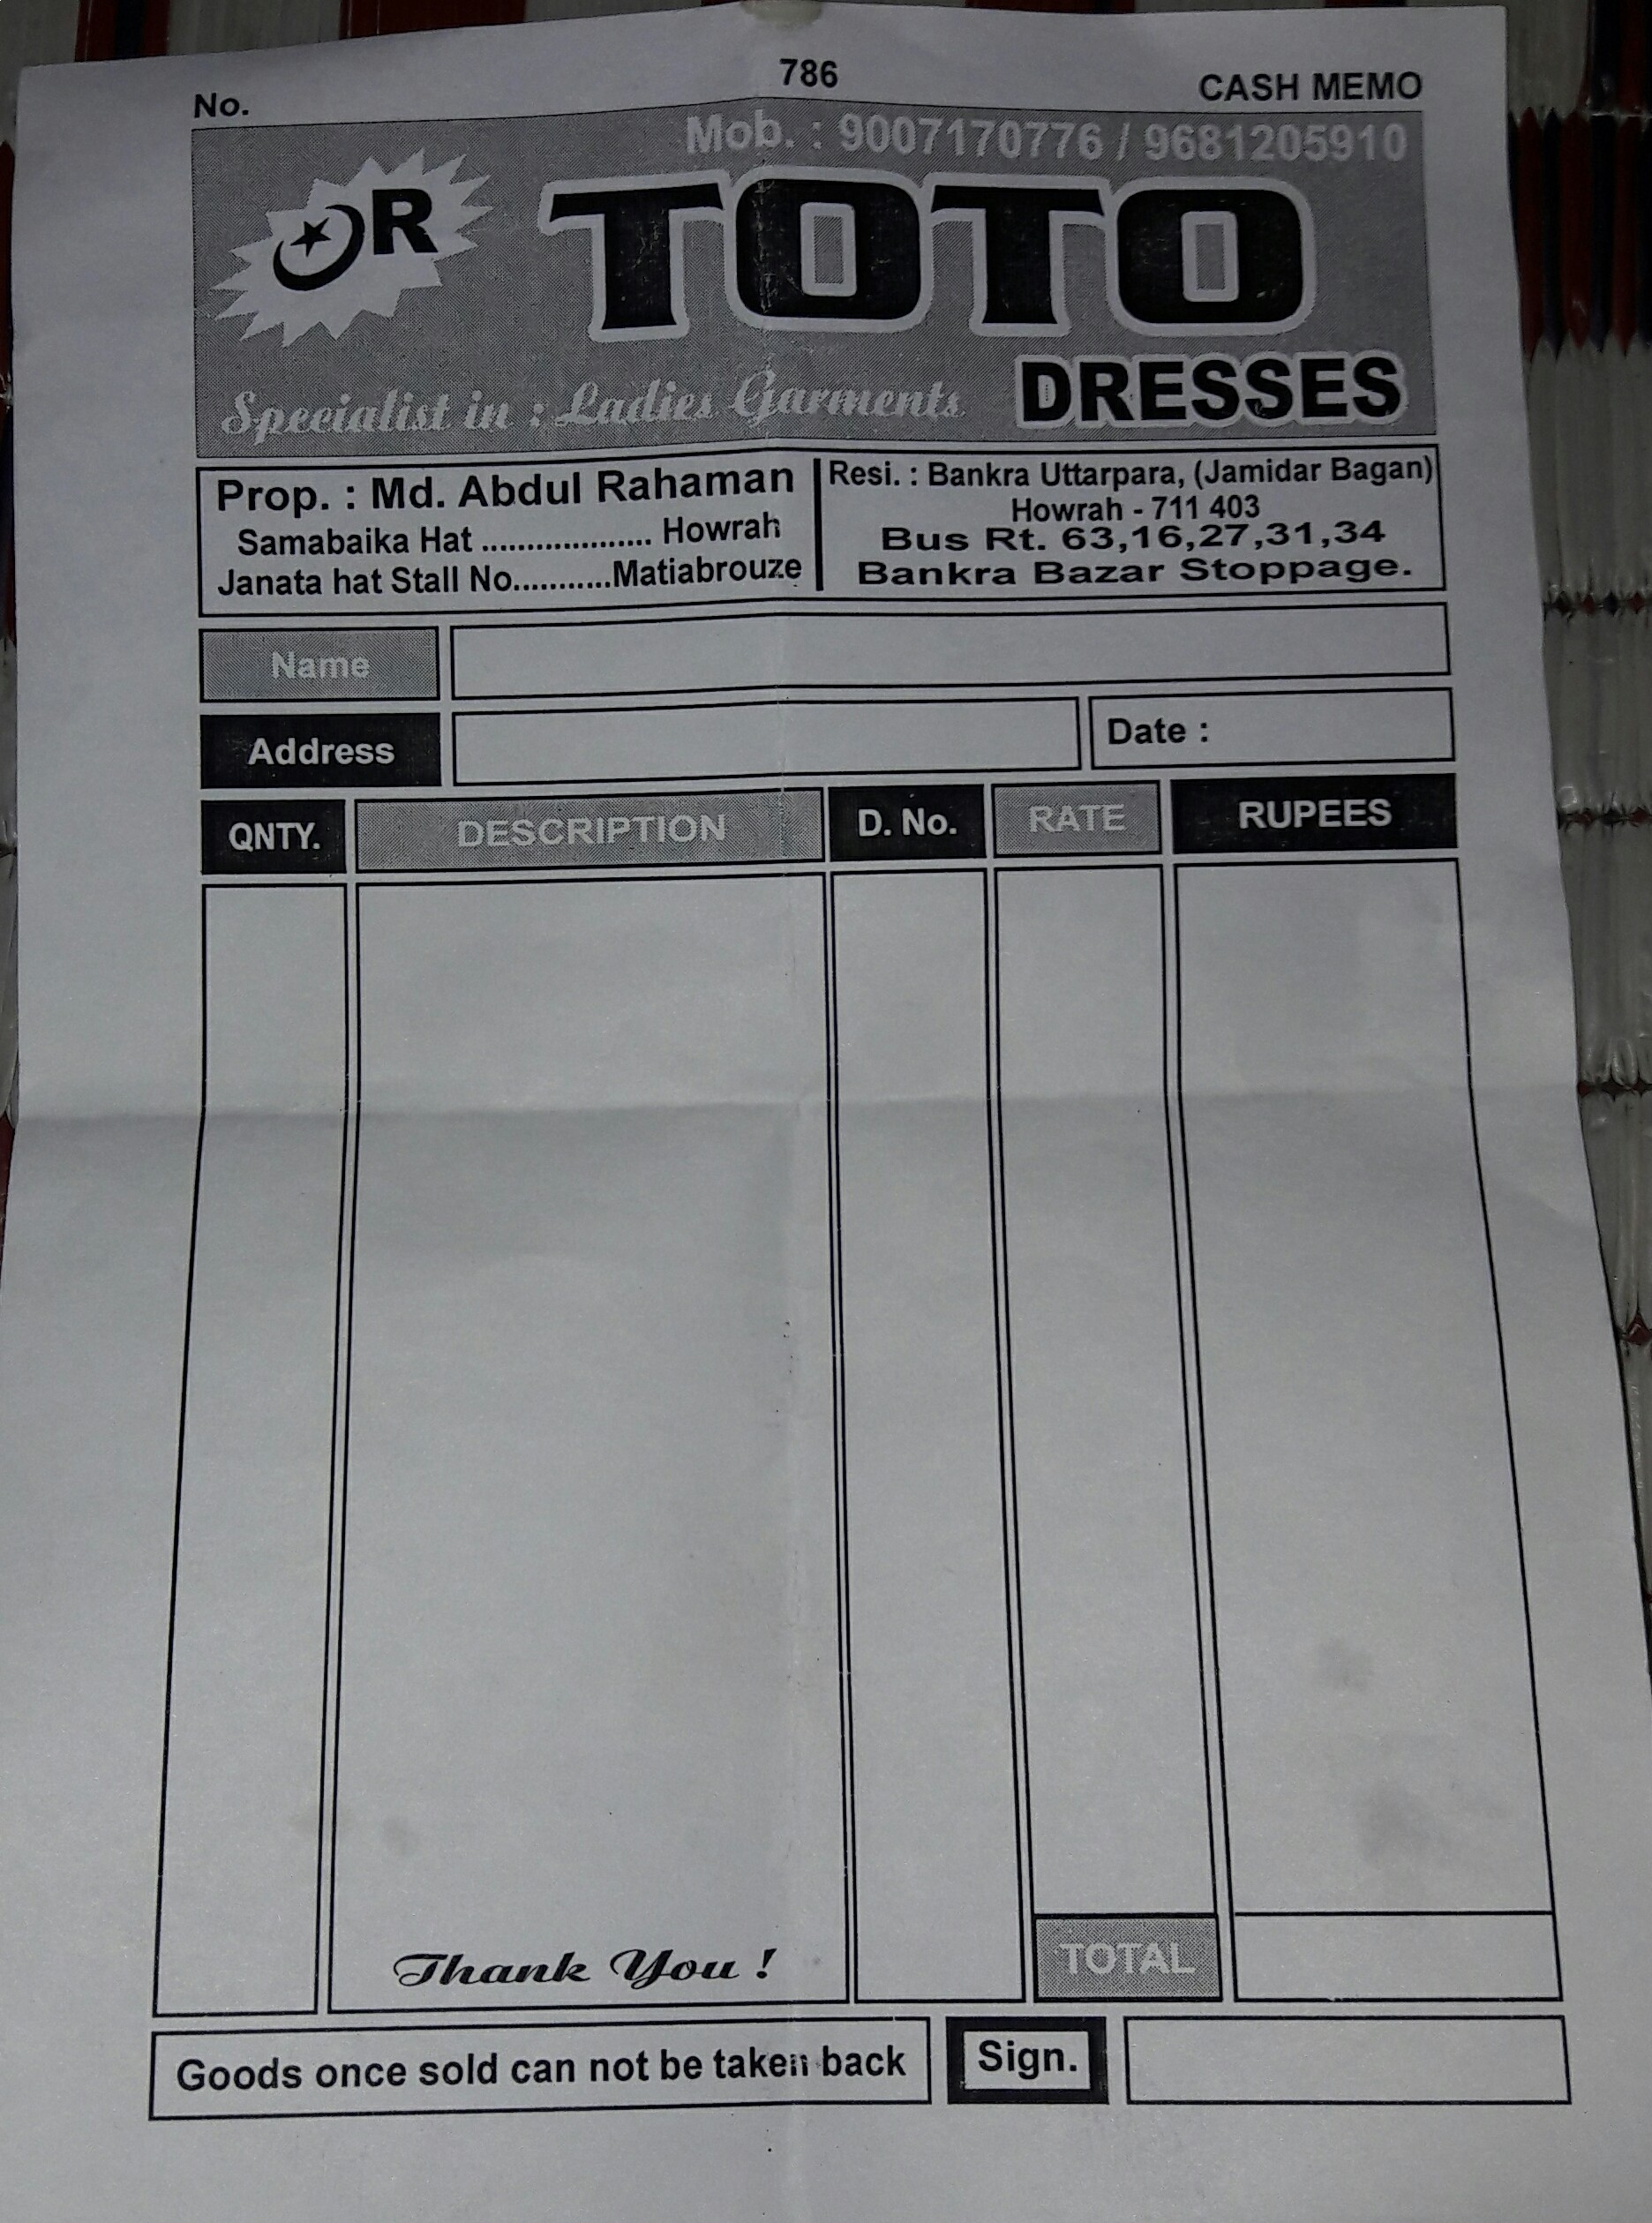 R.toto Dreses : Get Latest Updates and offers, Contact, Address ...